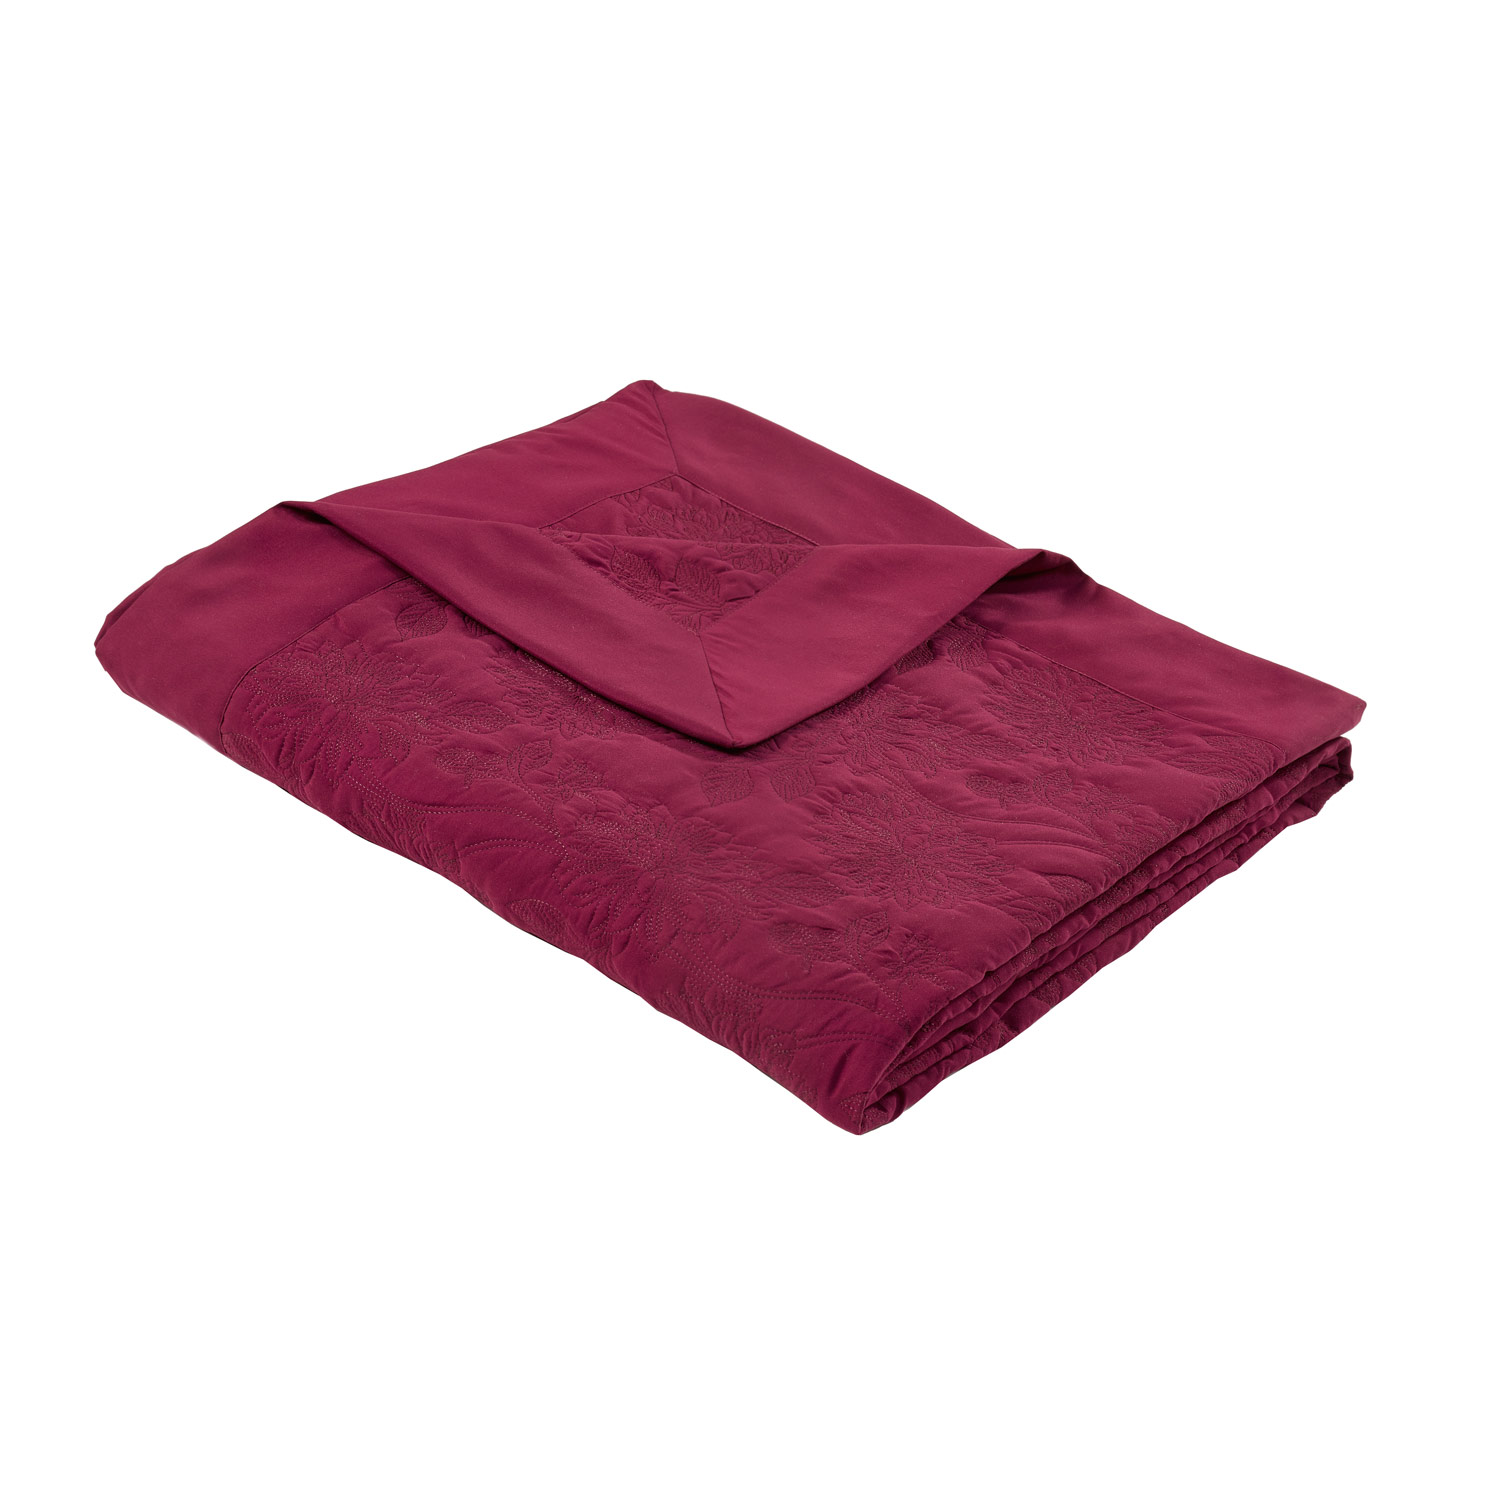 Annabelle Raspberry Quilted Luxury Throw